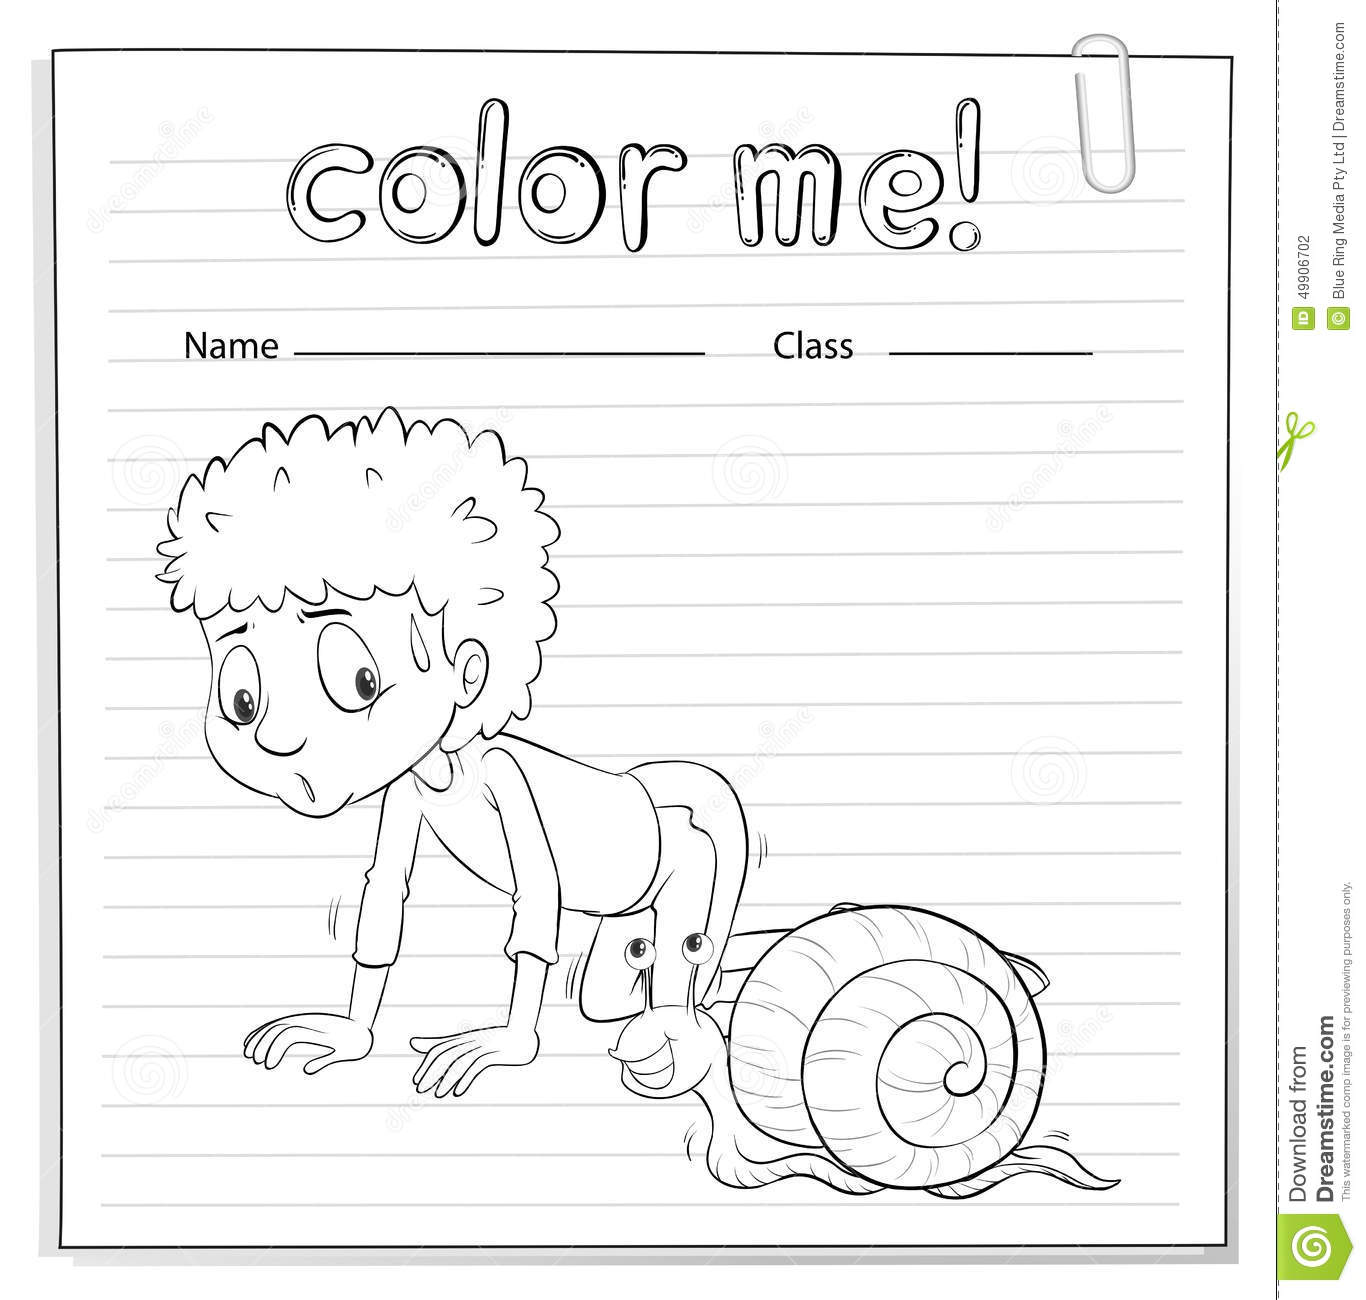 A Color Me Worksheet With A Kid And A Snail Stock Vector